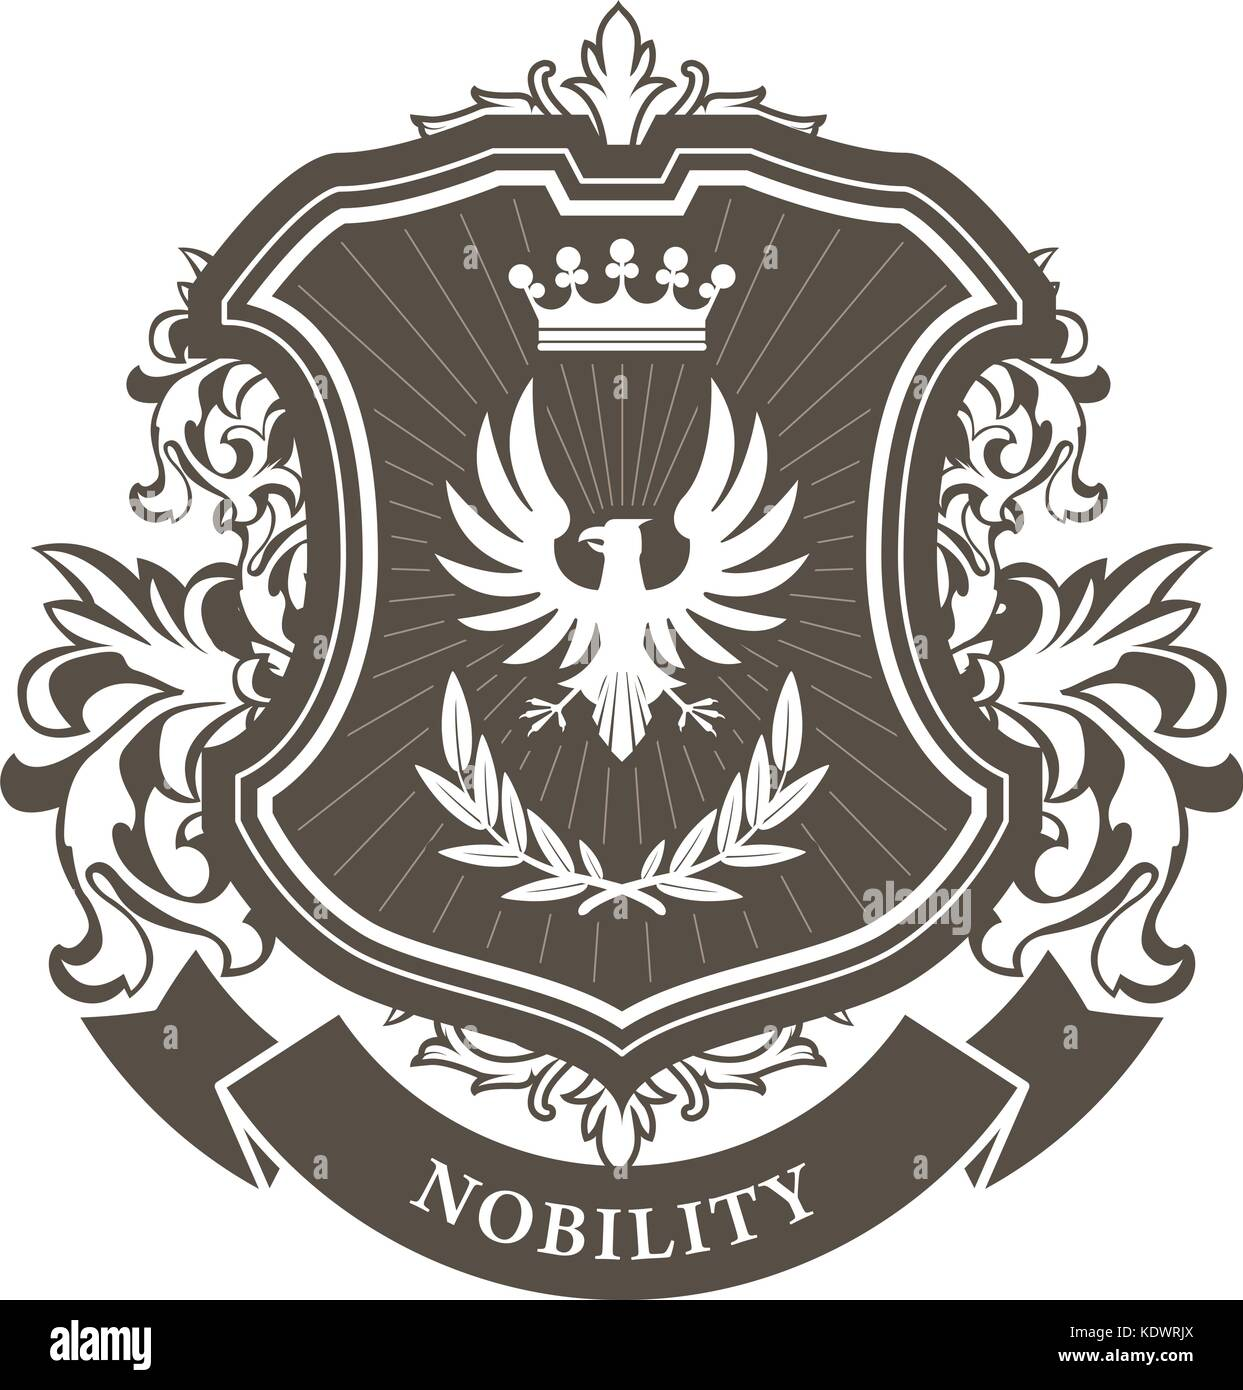 Nobility Coat Of Arms Stock Vector Images Alamy